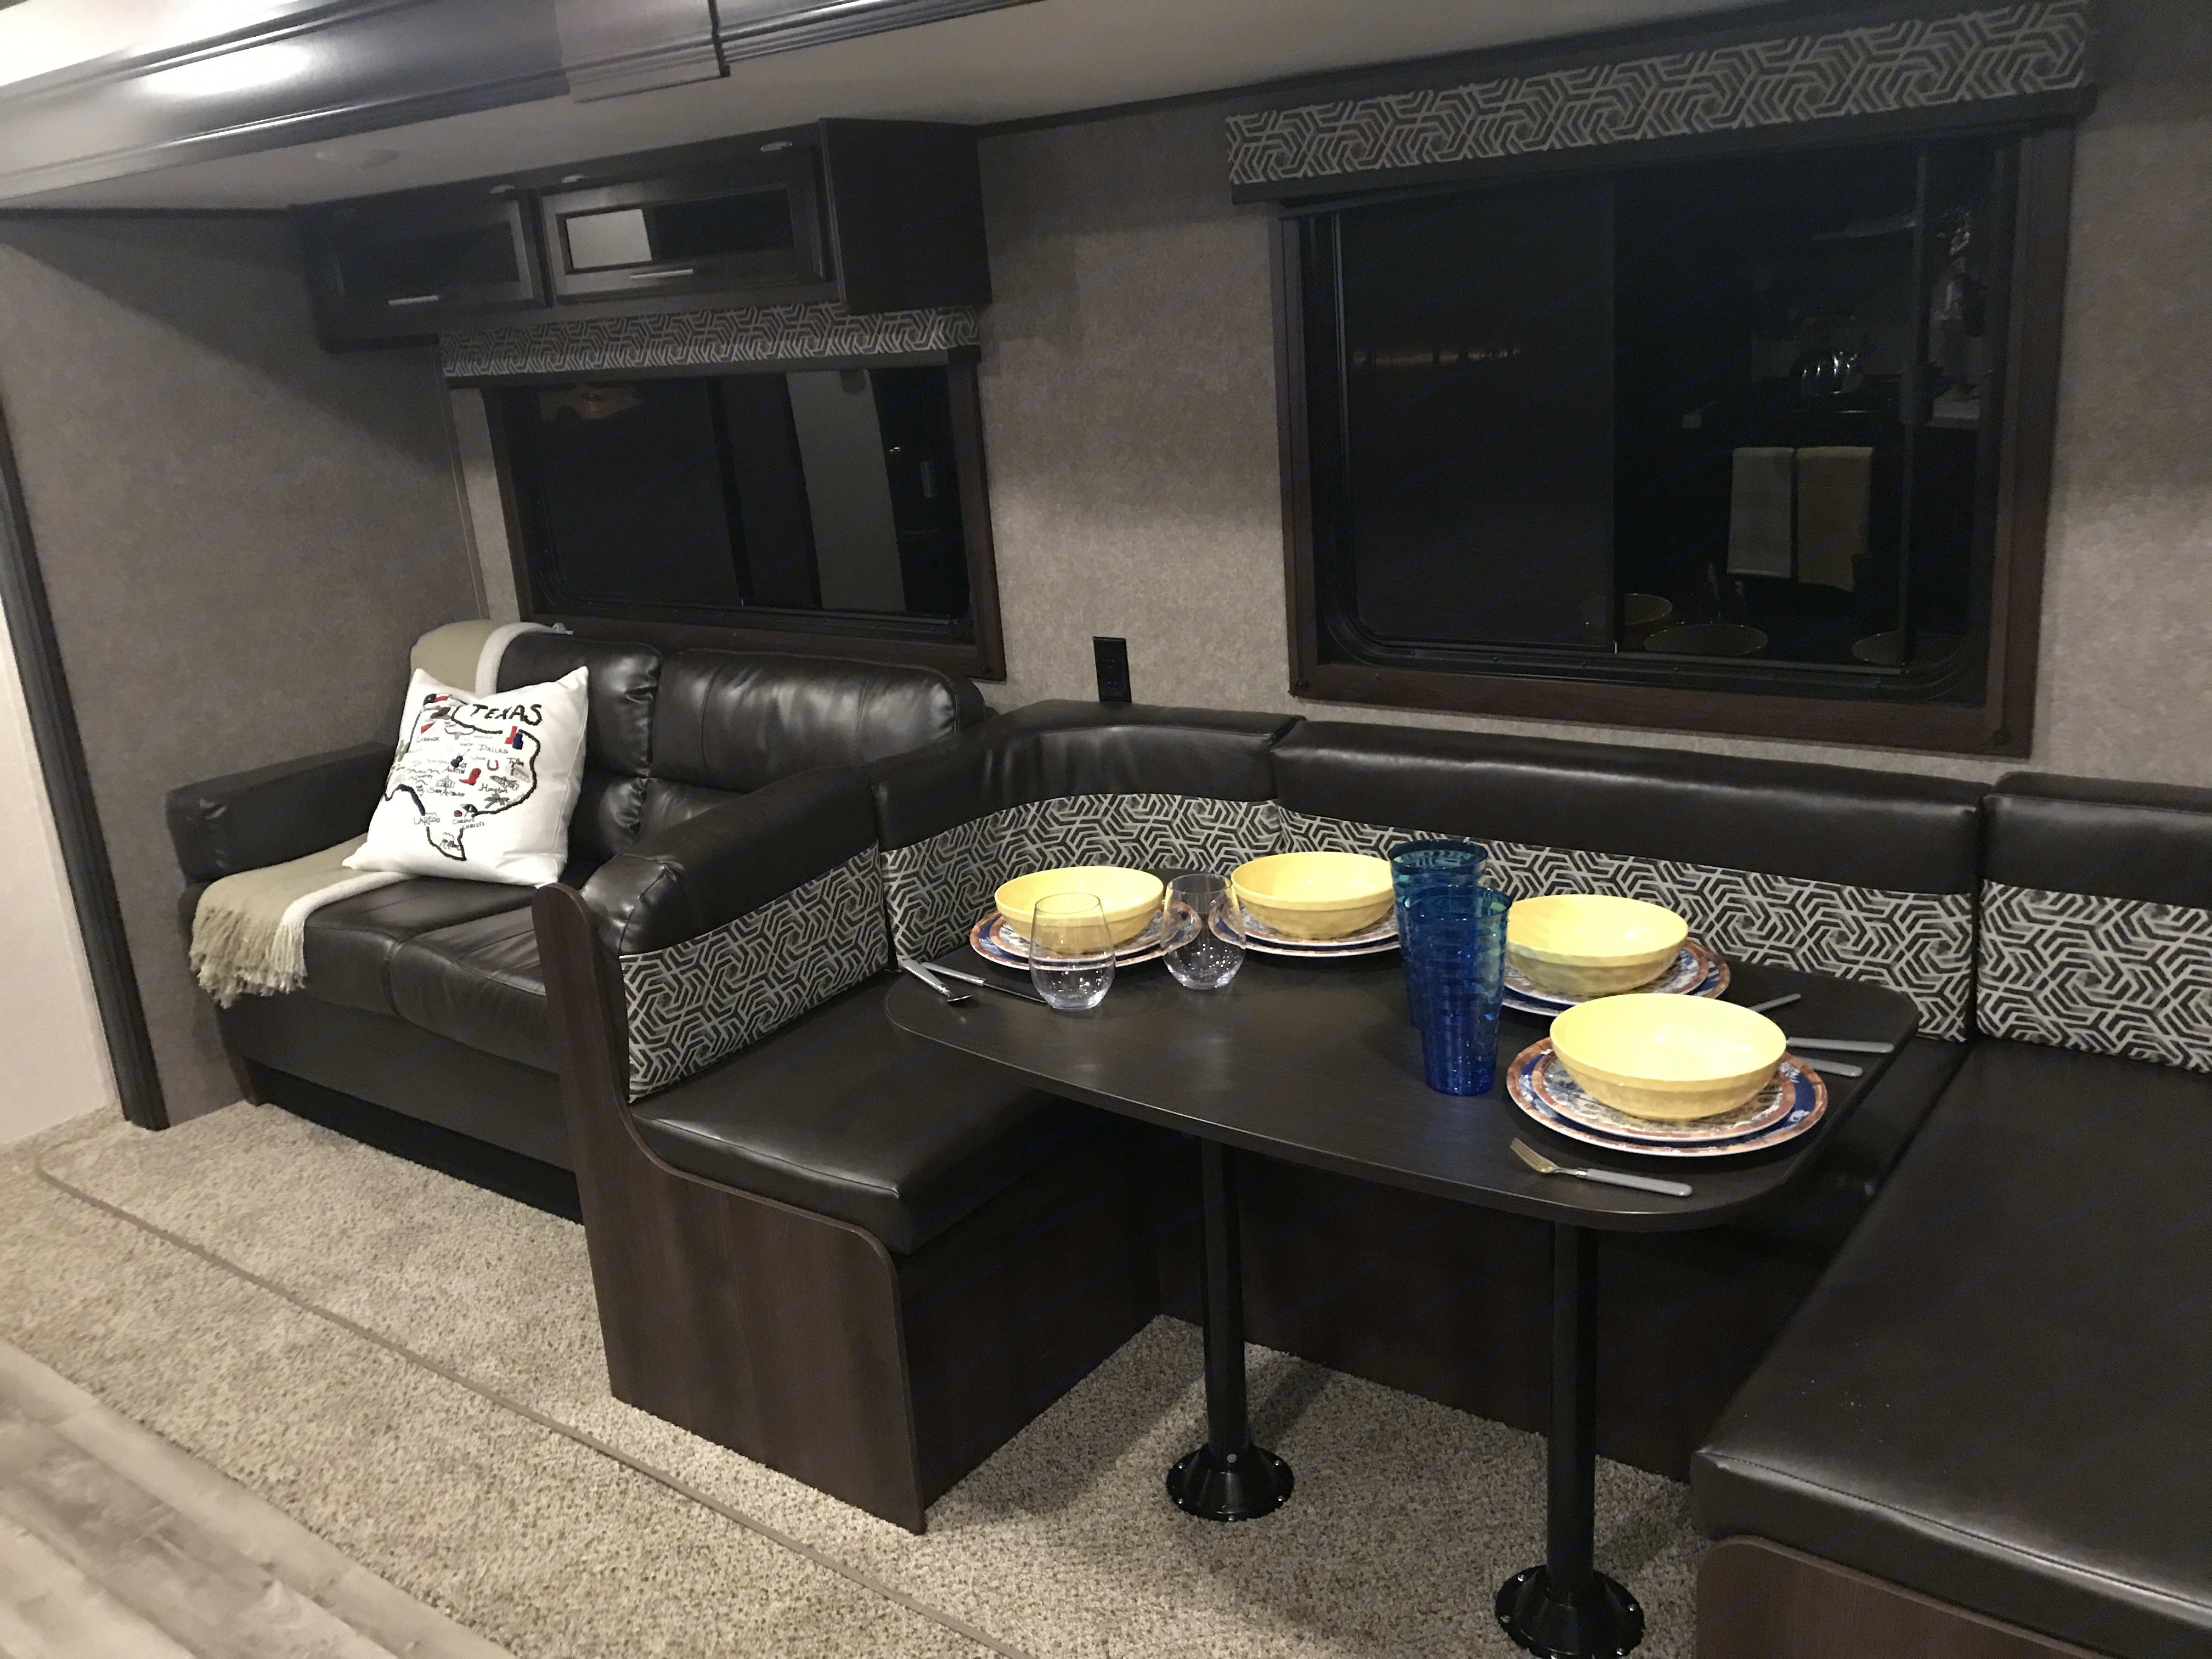 Another view of living/dining area with some plates and bowls out. Jayco Flight 284BHS SLX 2019